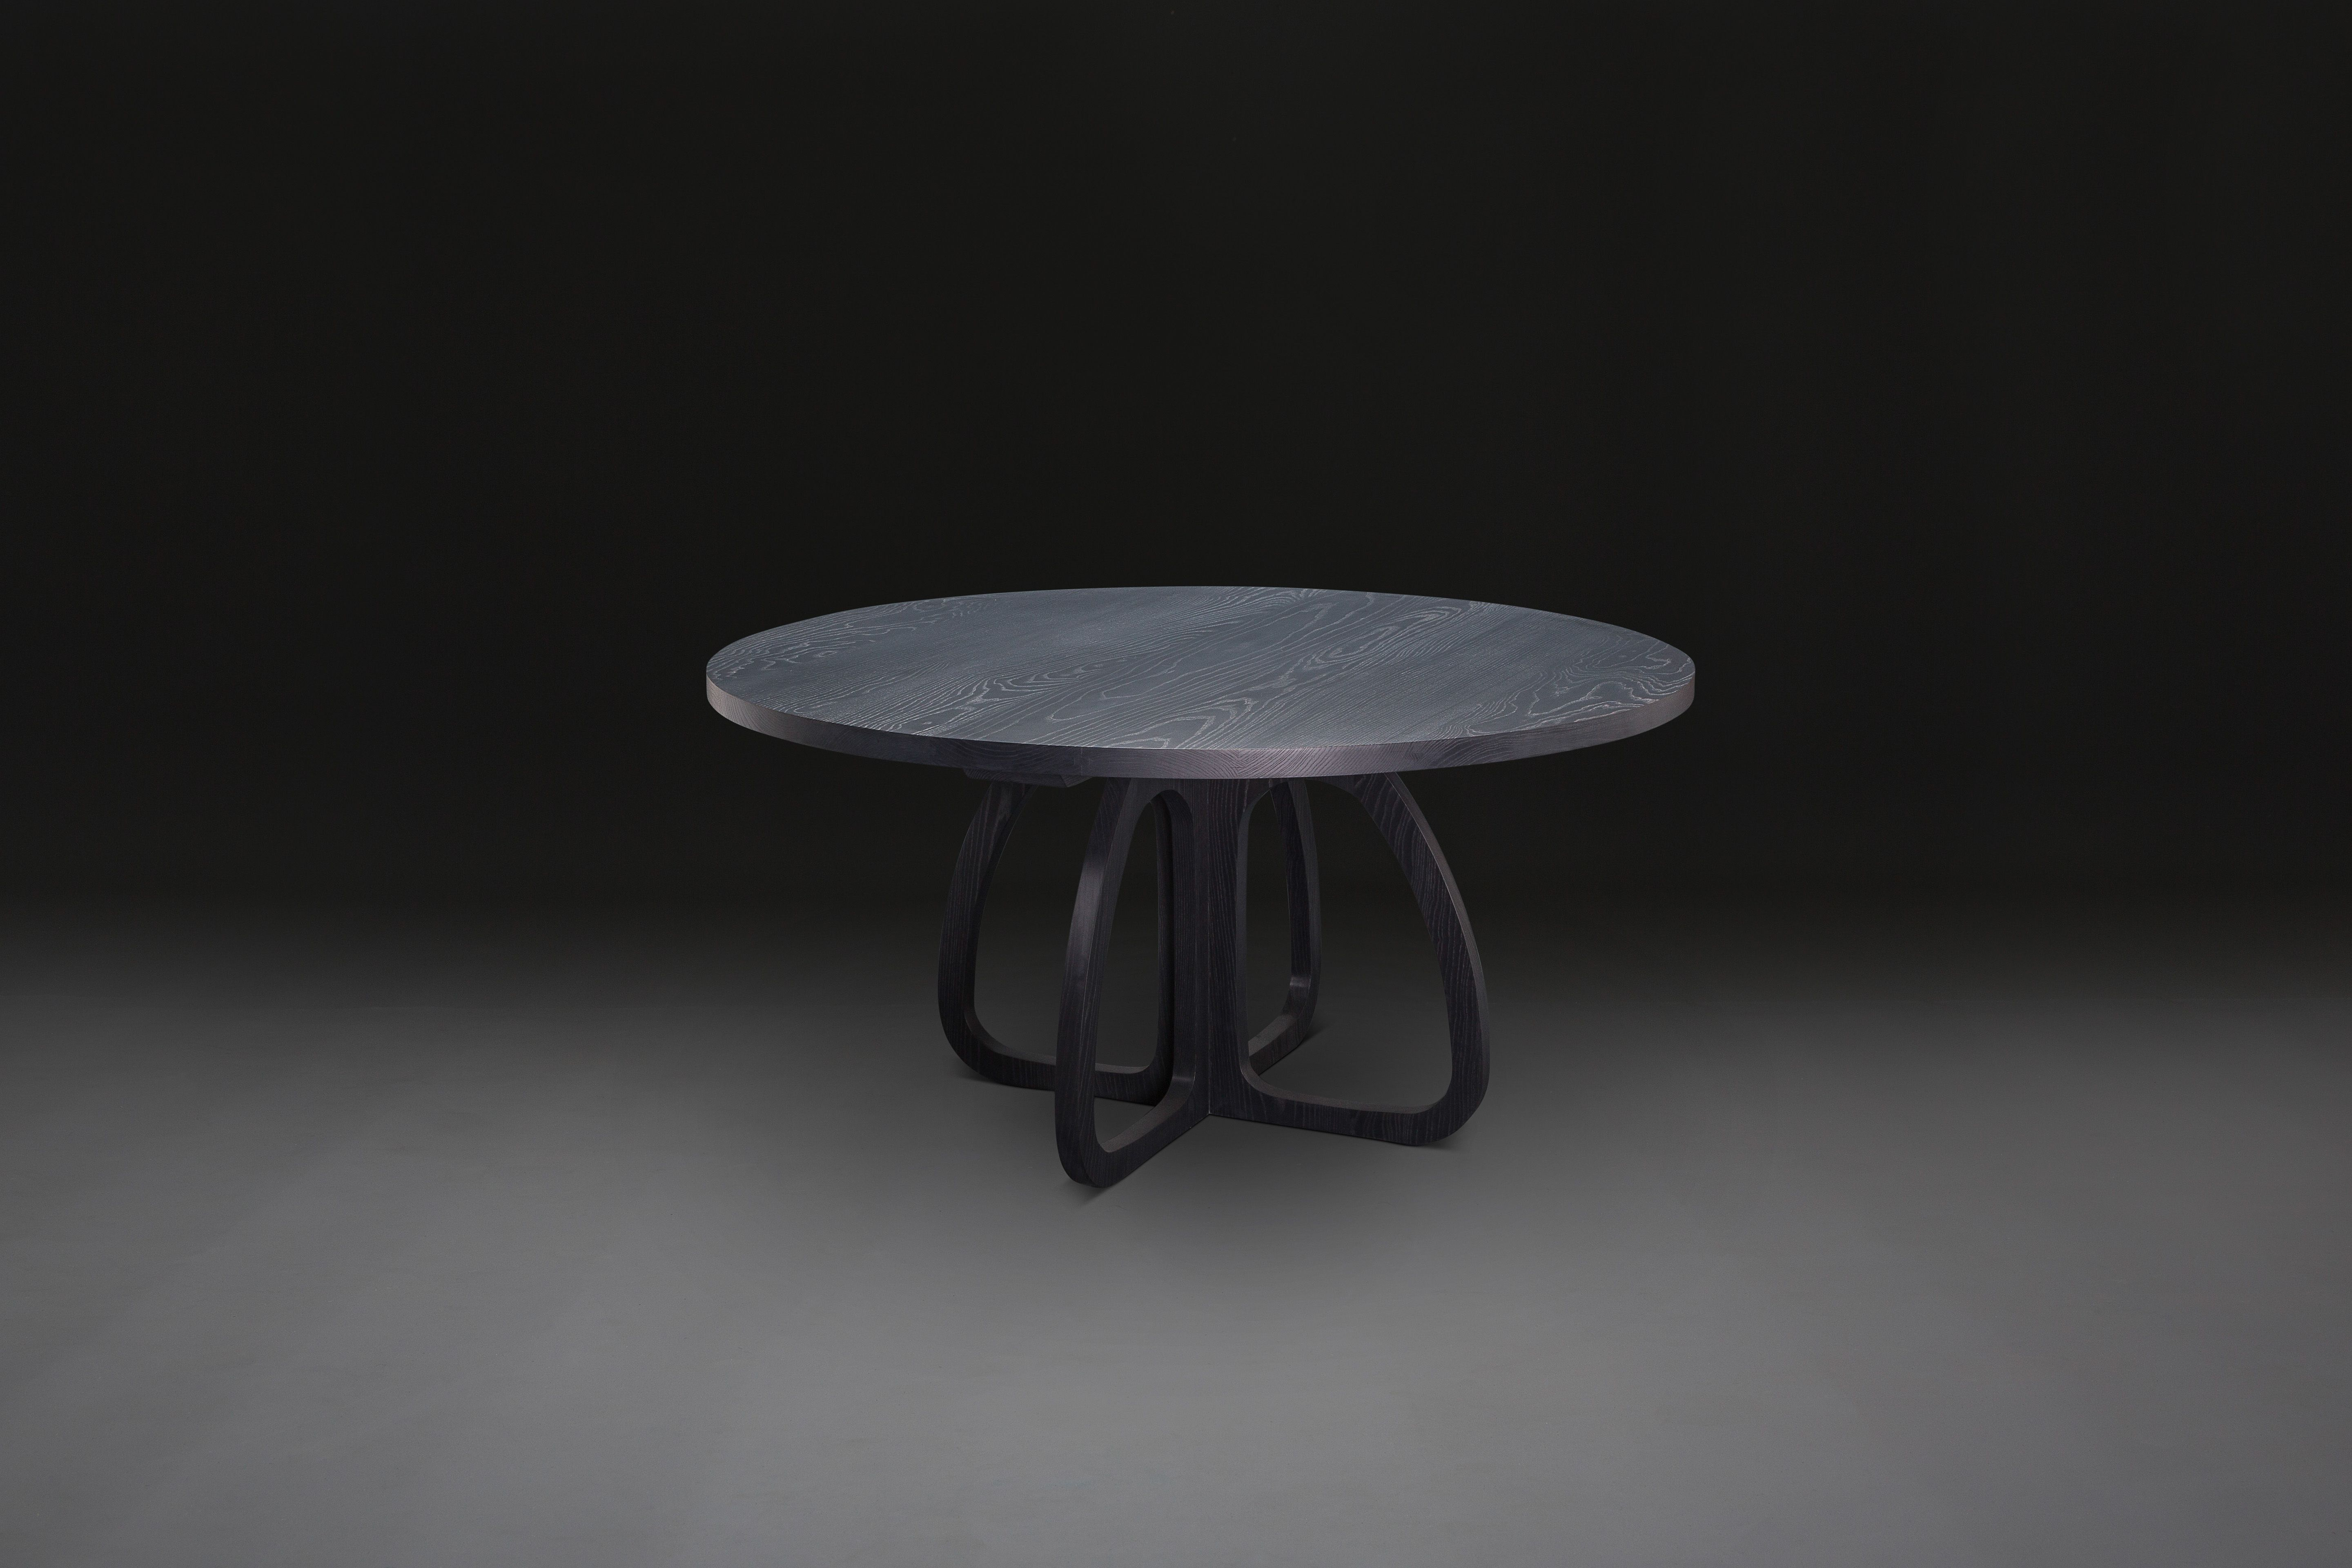 Barcelona 60 Round Dining Table 5 Jpg 5760 3840 60 Round